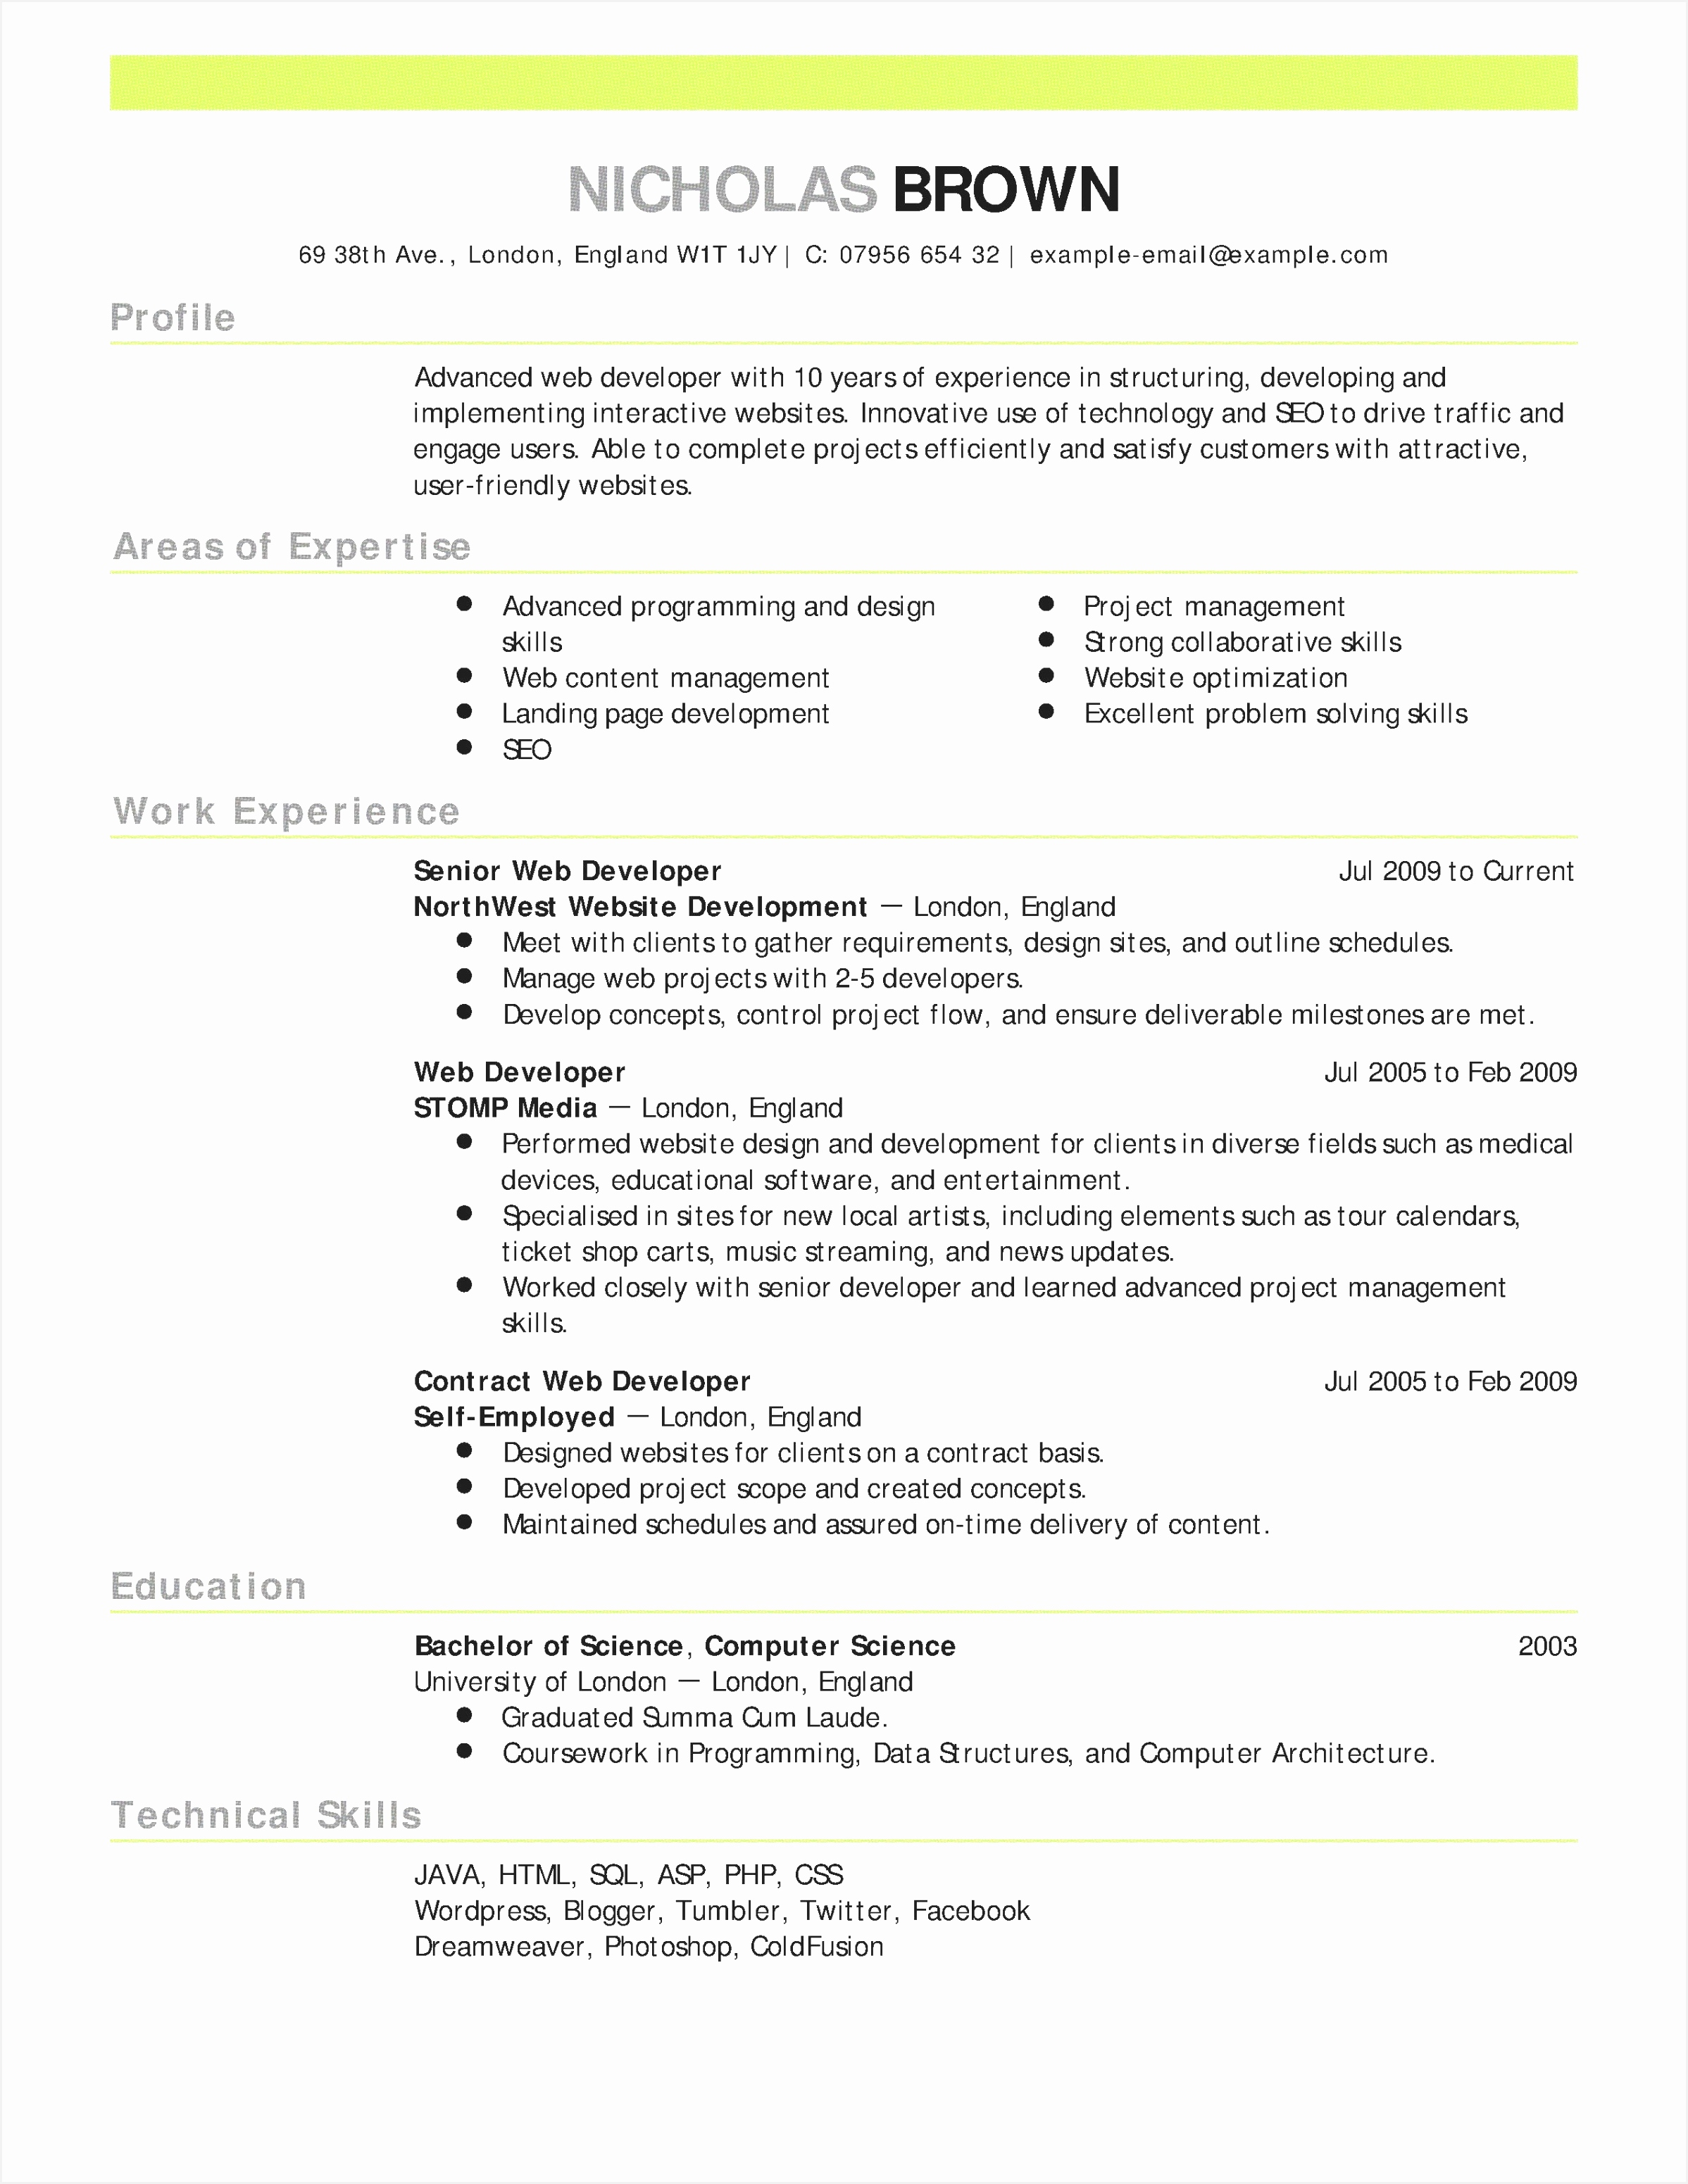 Sample Cover Letter Resume Accounting Clerk New Accounting Assistant Resume New Empty Resume 0d Archives Aurelianmg 31022397gfxzn